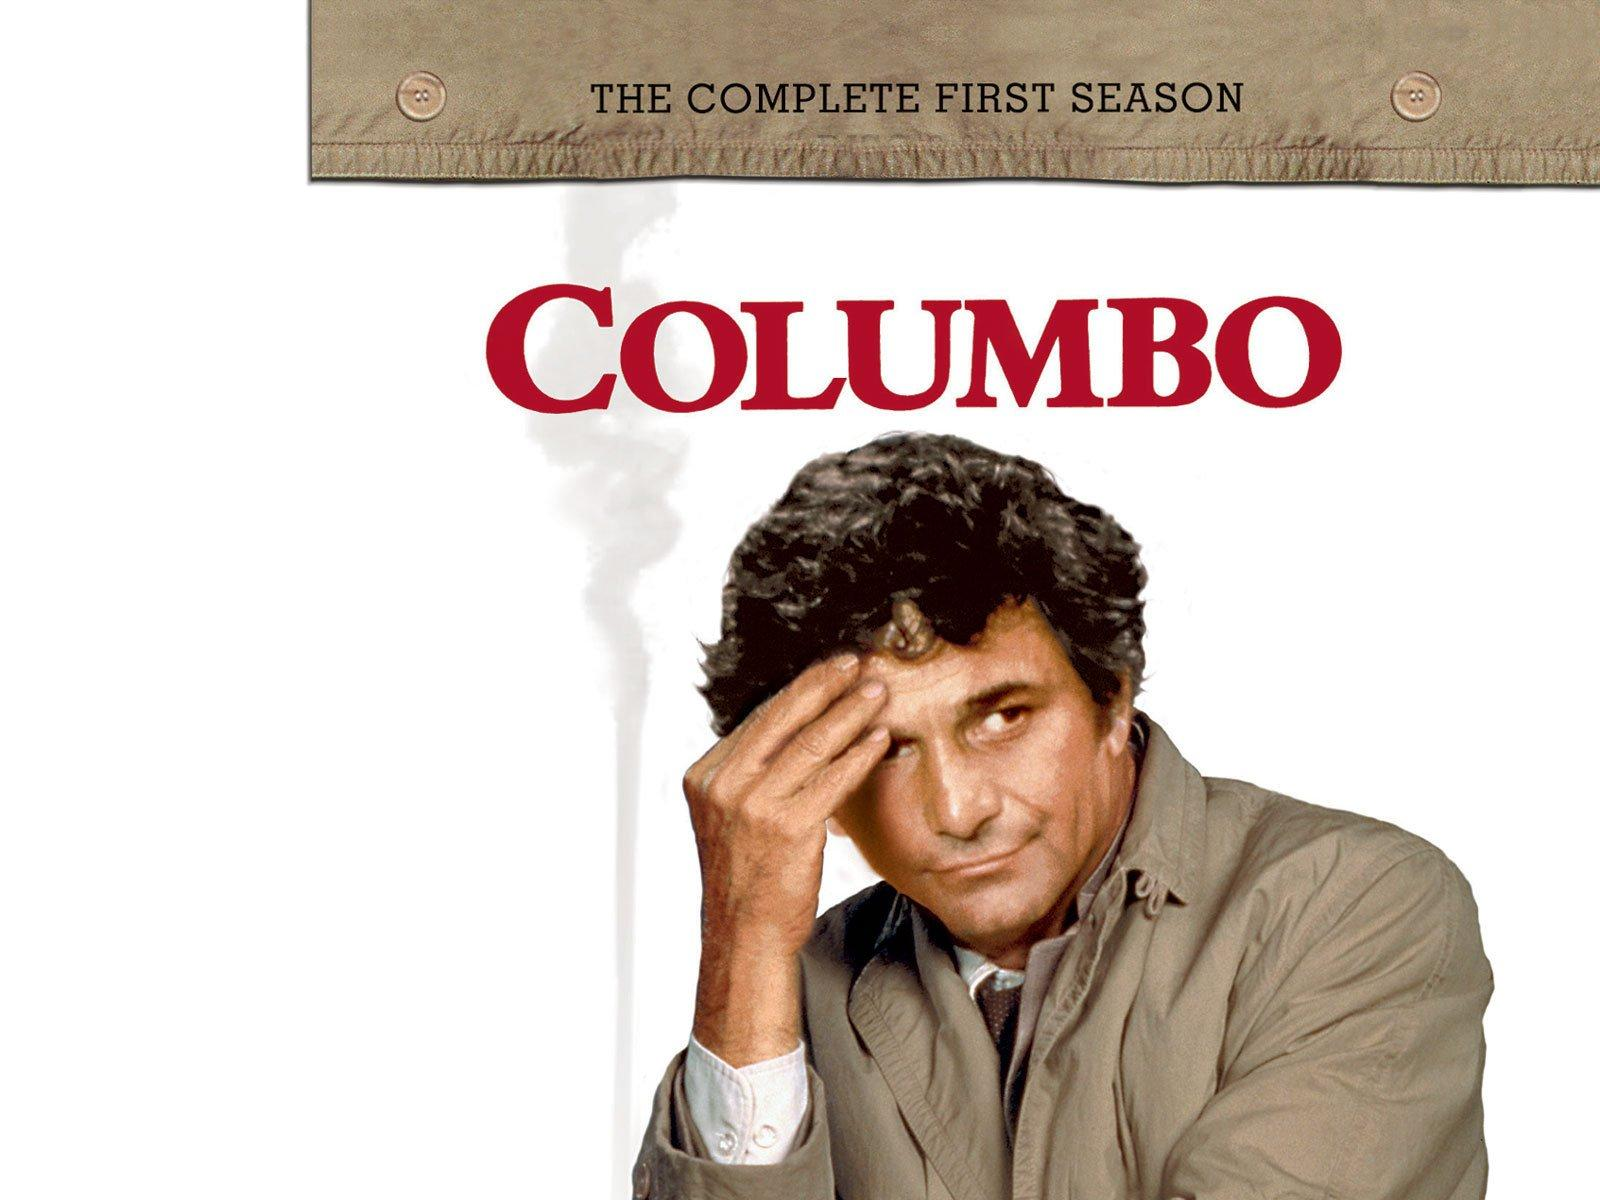 Columbo Wallpaper Image Group (31+)